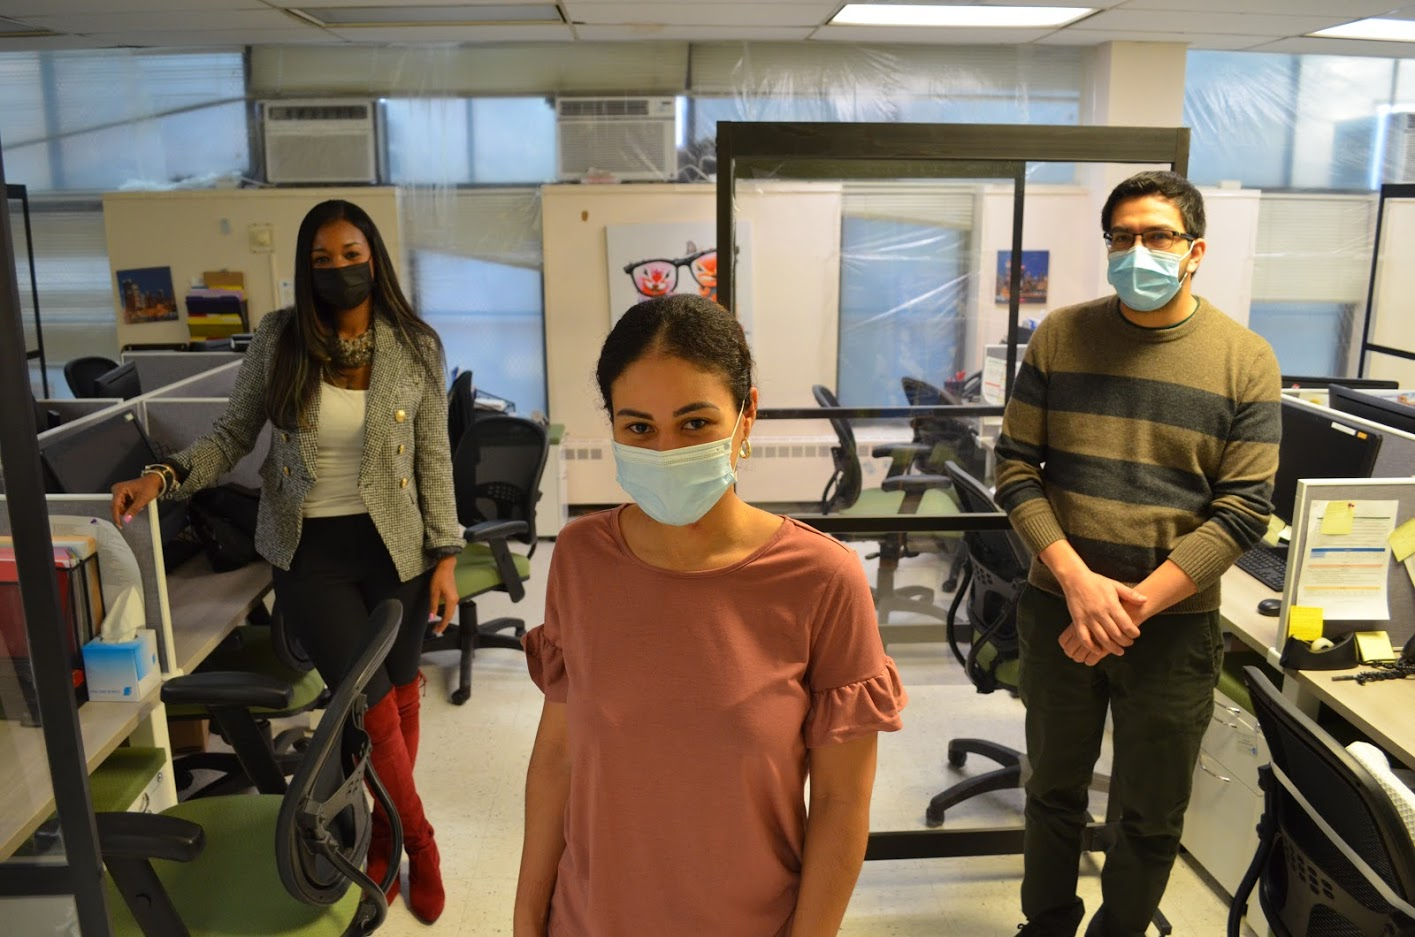 Three people standing in the middle of a office space in a triangle form looking at the camera with their masks on. The one in the middle is a women, the one on the top left of the photo is a women and the one on the top right of the image is a male